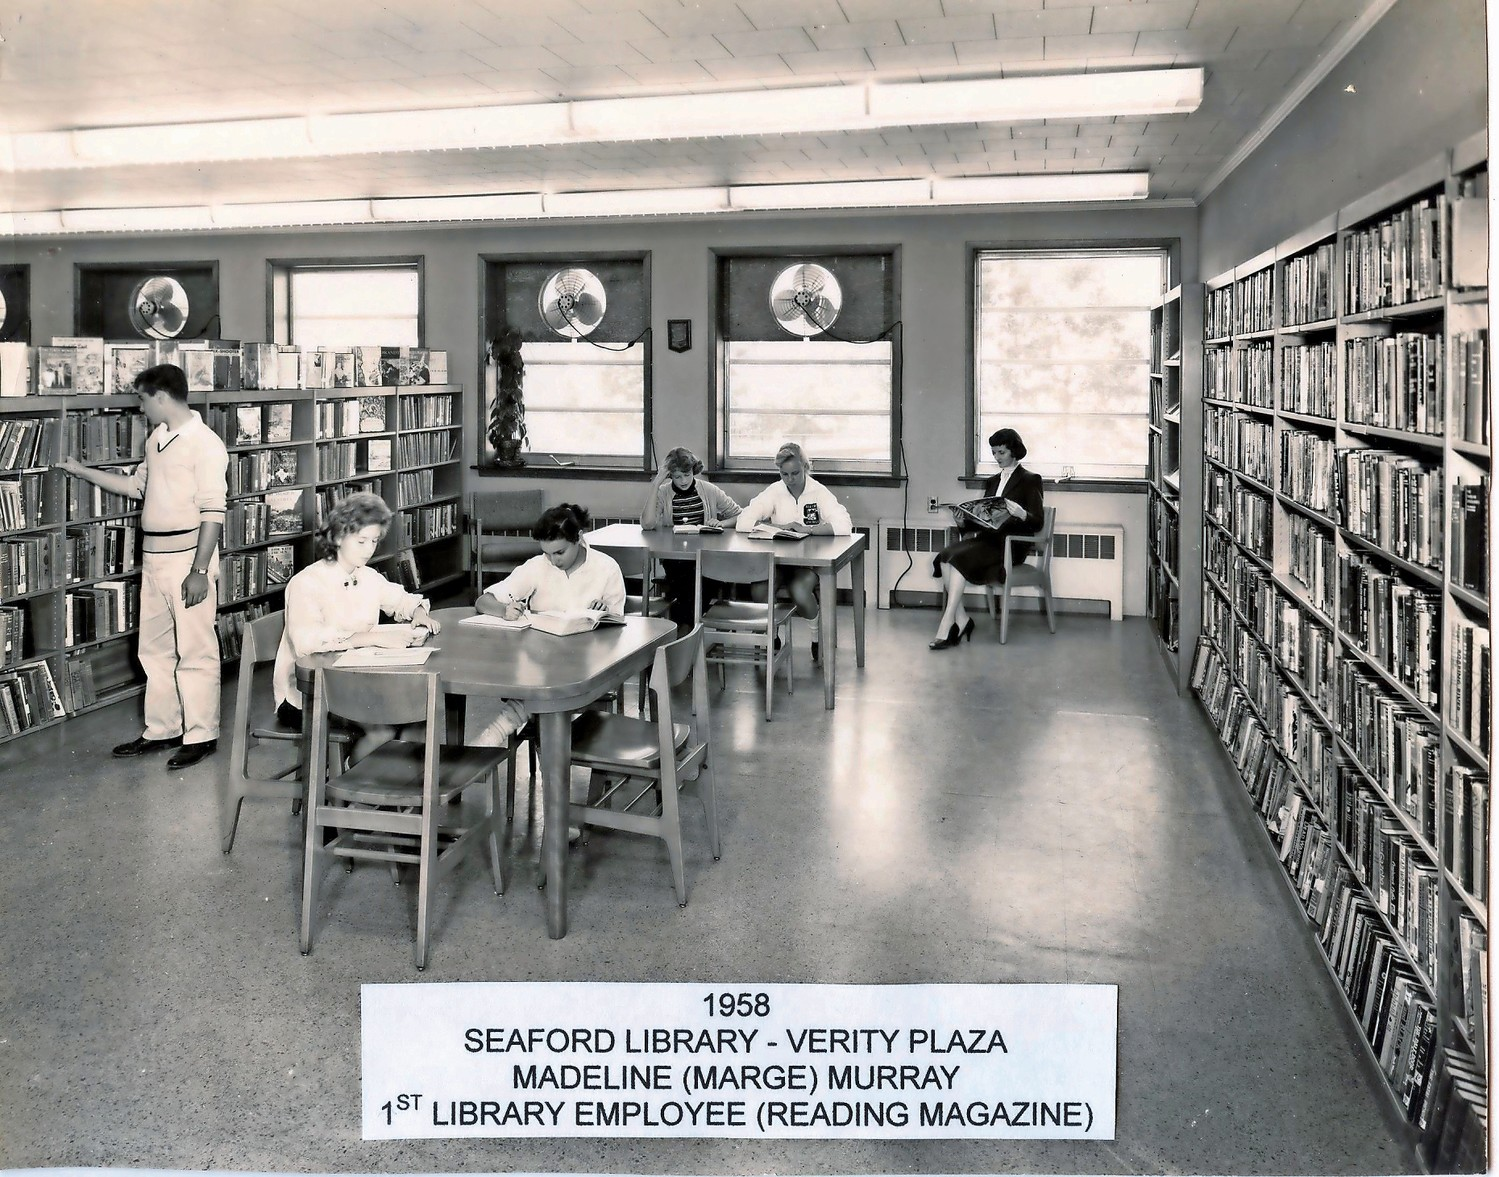 Madeline Murray, far right, the first Seaford Library clerk, read a magazine in the original building, at Verity Plaza, in 1958.